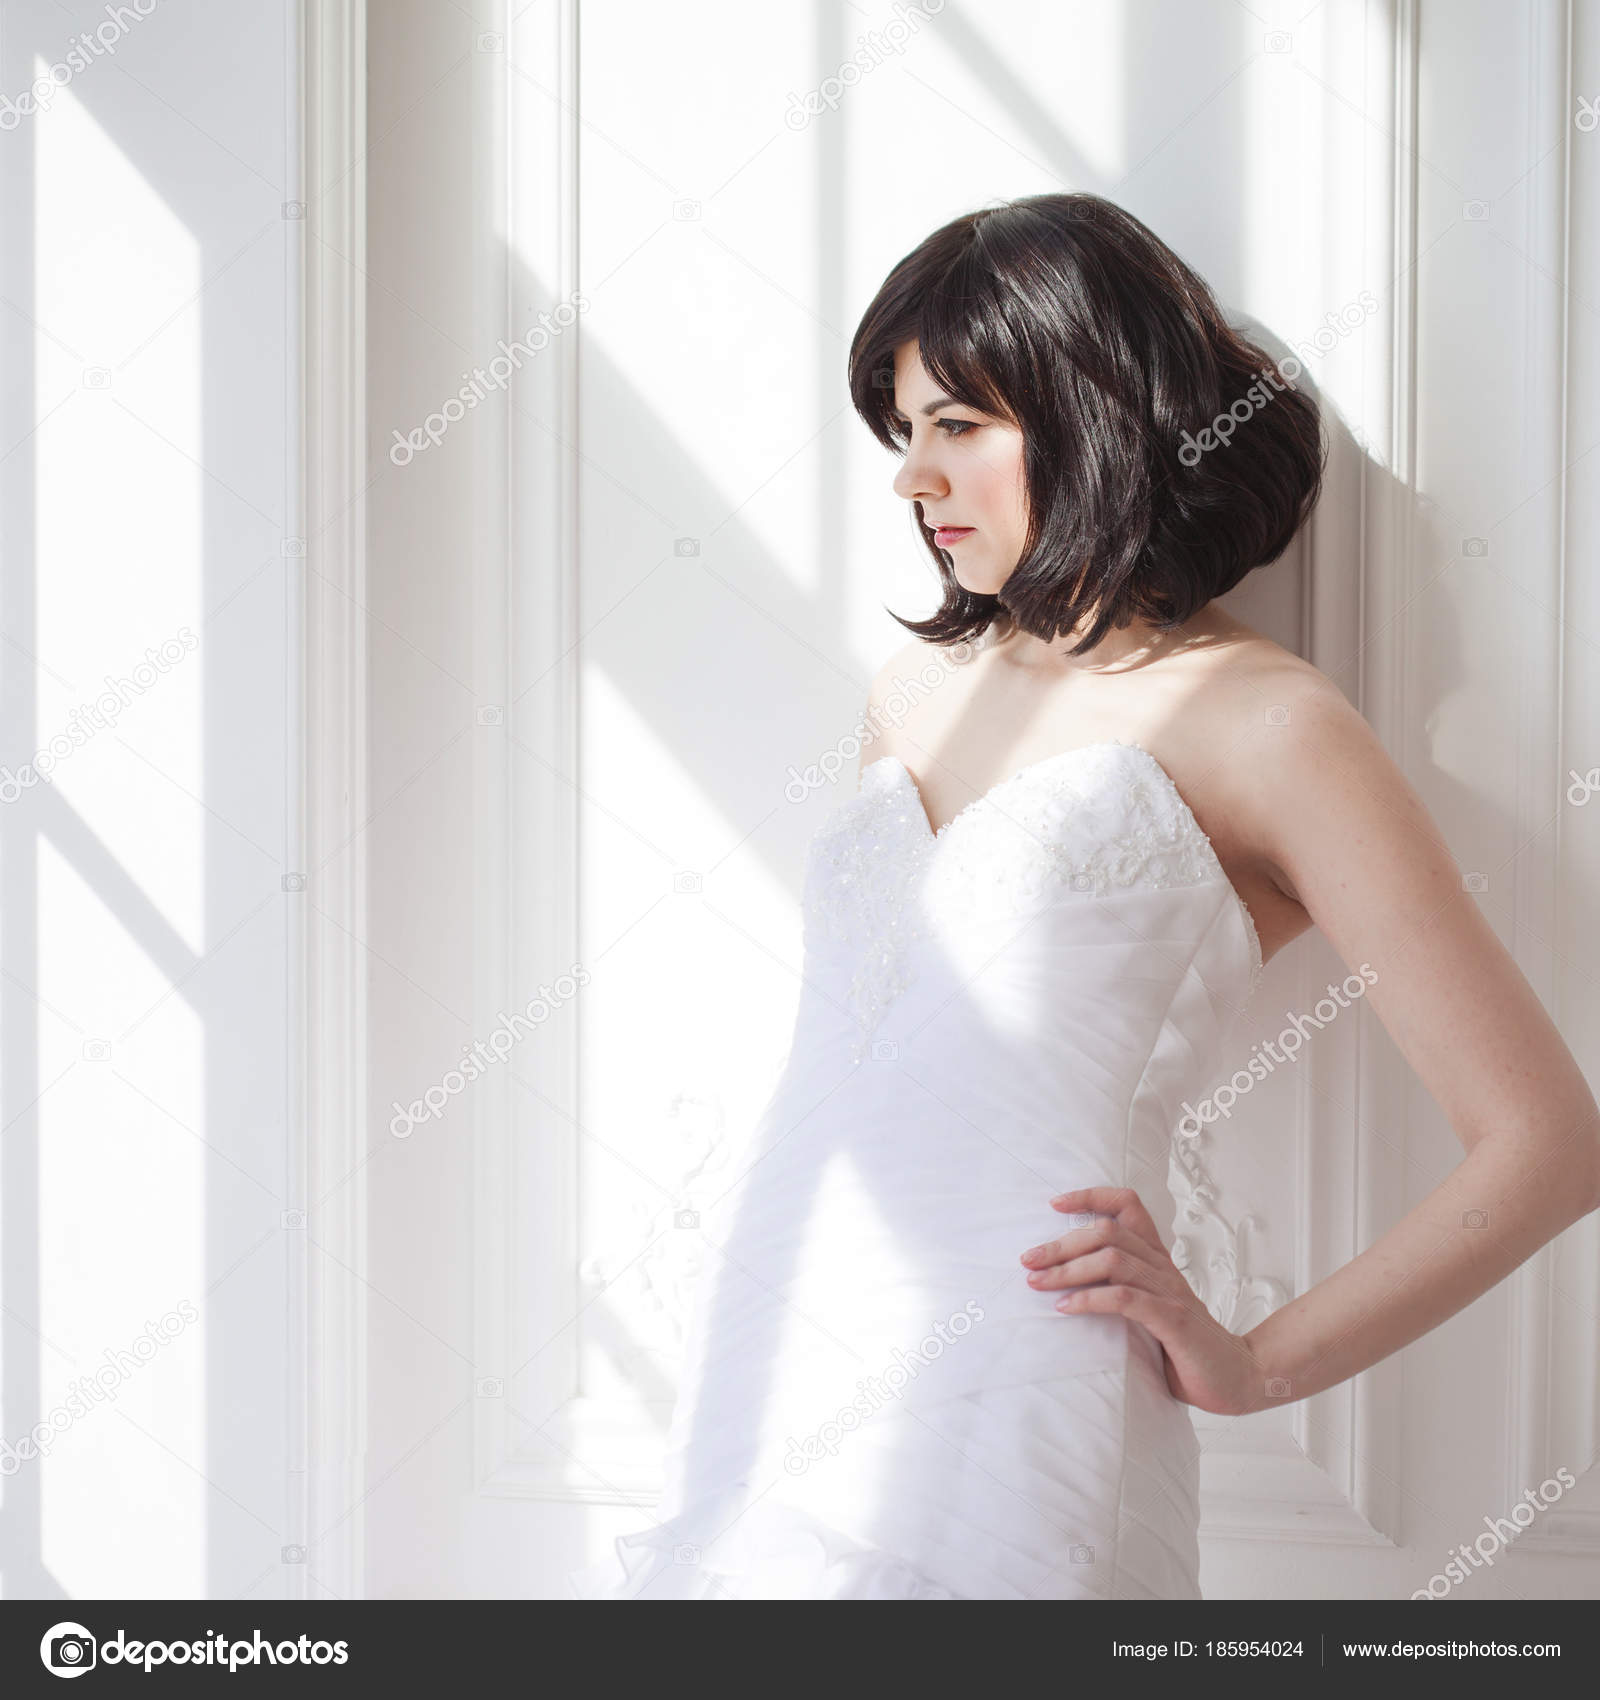 Portrait Of Young Attractive Brunette With Short Hair In A Wedding